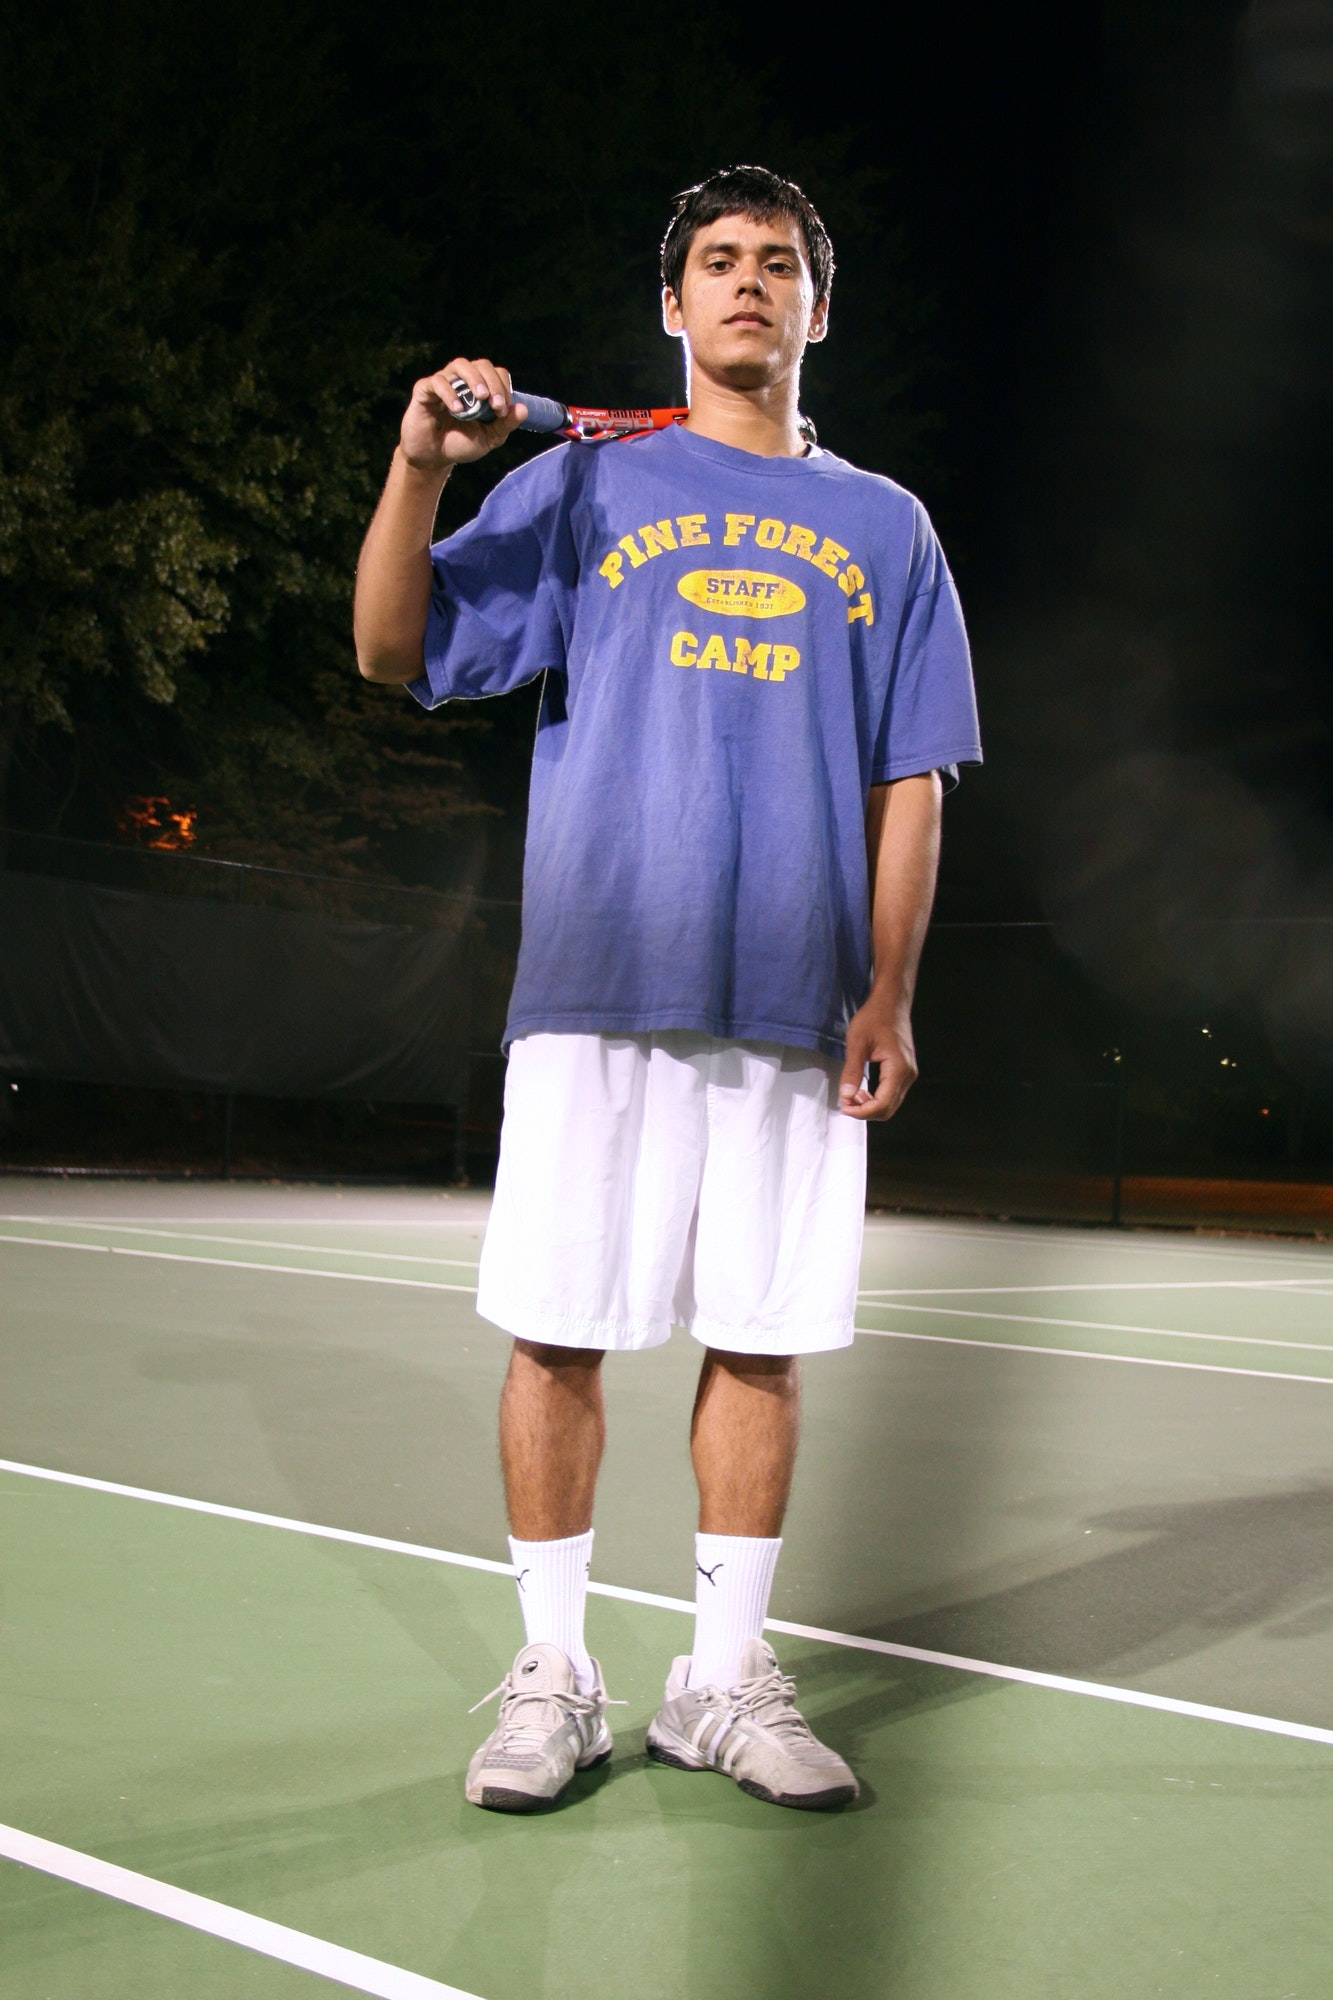 Chatwinder S. teaches tennis lessons in Fayetteville, SC